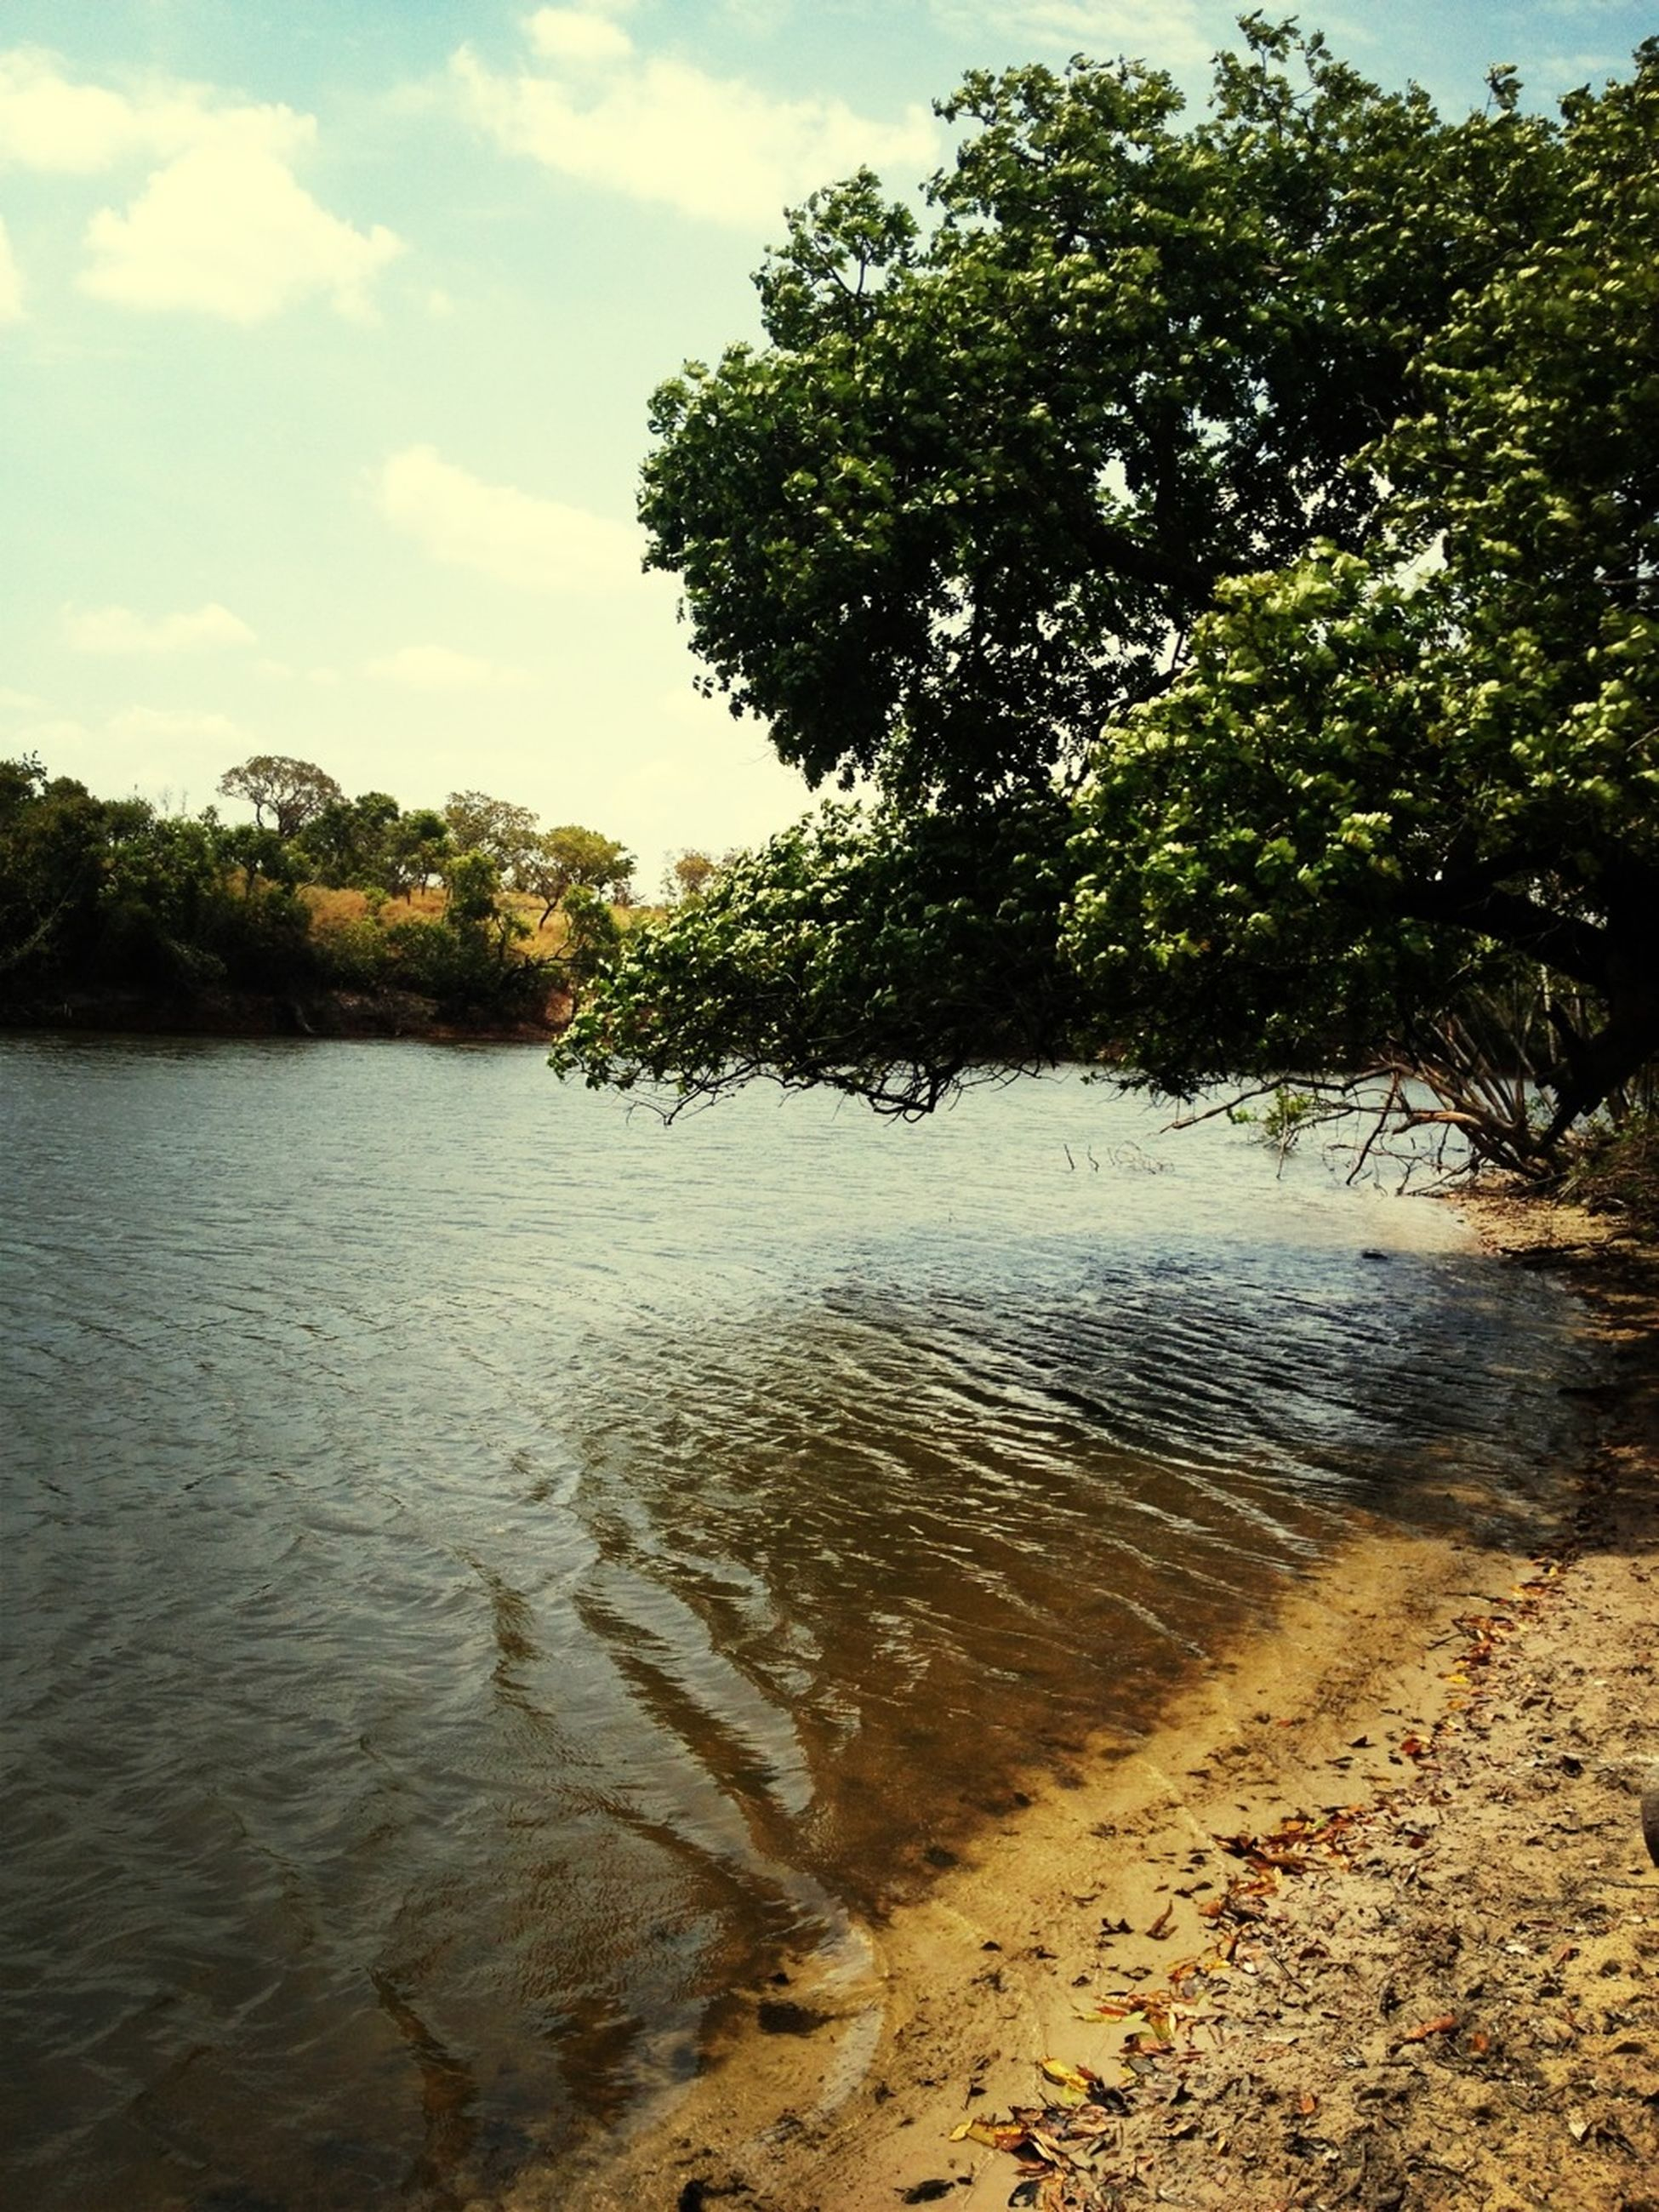 water, tree, tranquility, tranquil scene, sky, nature, beauty in nature, scenics, lake, growth, reflection, beach, waterfront, rippled, river, sand, day, idyllic, outdoors, no people